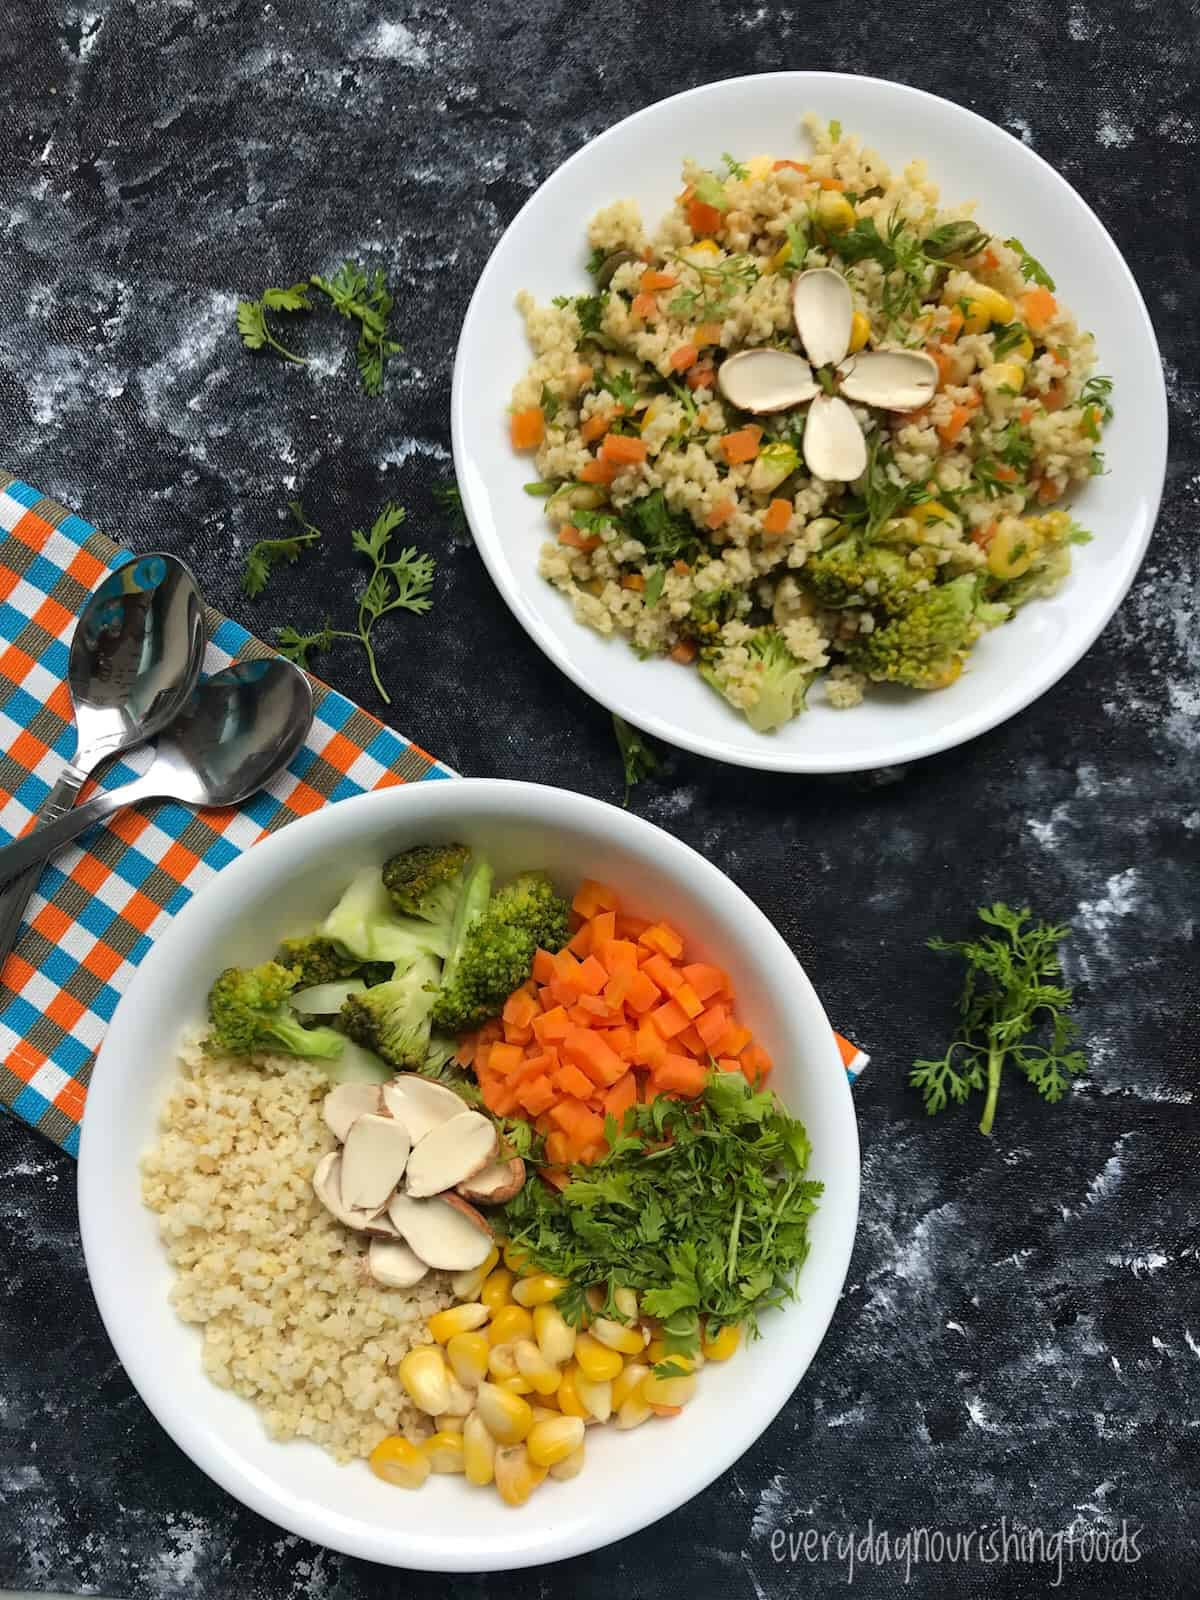 millet vegetable salad recipe with ingredients picture